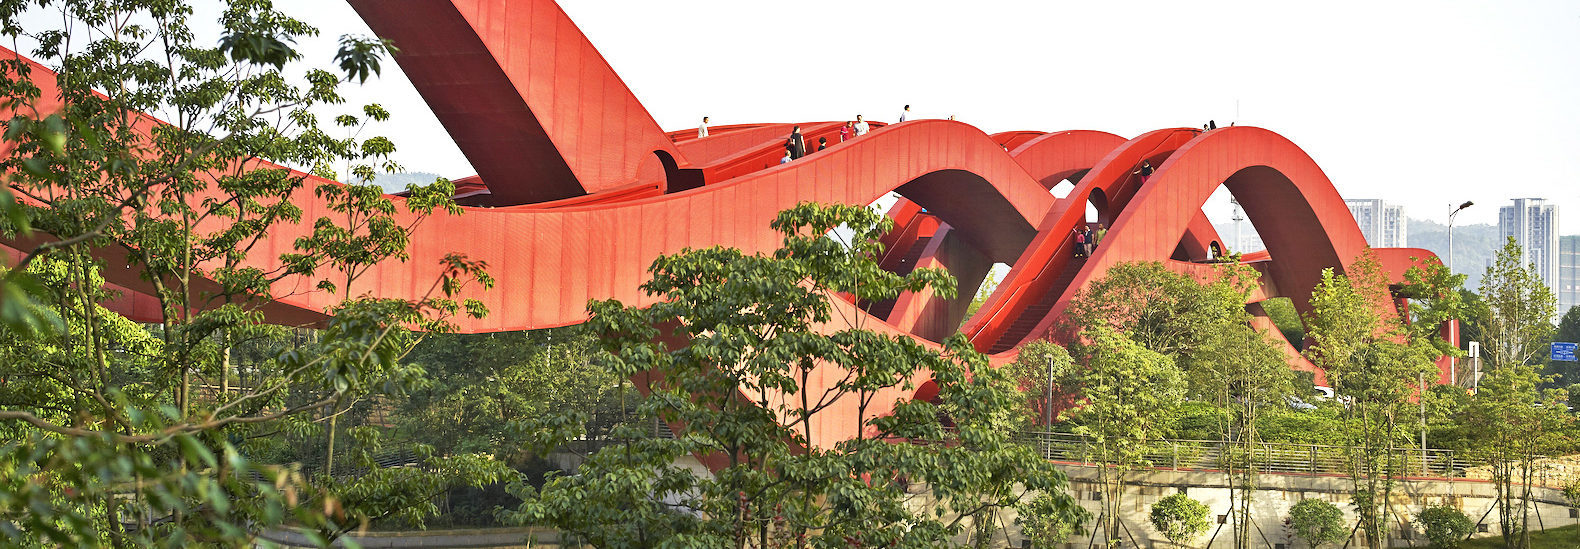 Spectacular Lucky Knot Bridge In China Twists And Turns Like A Möbius Strip